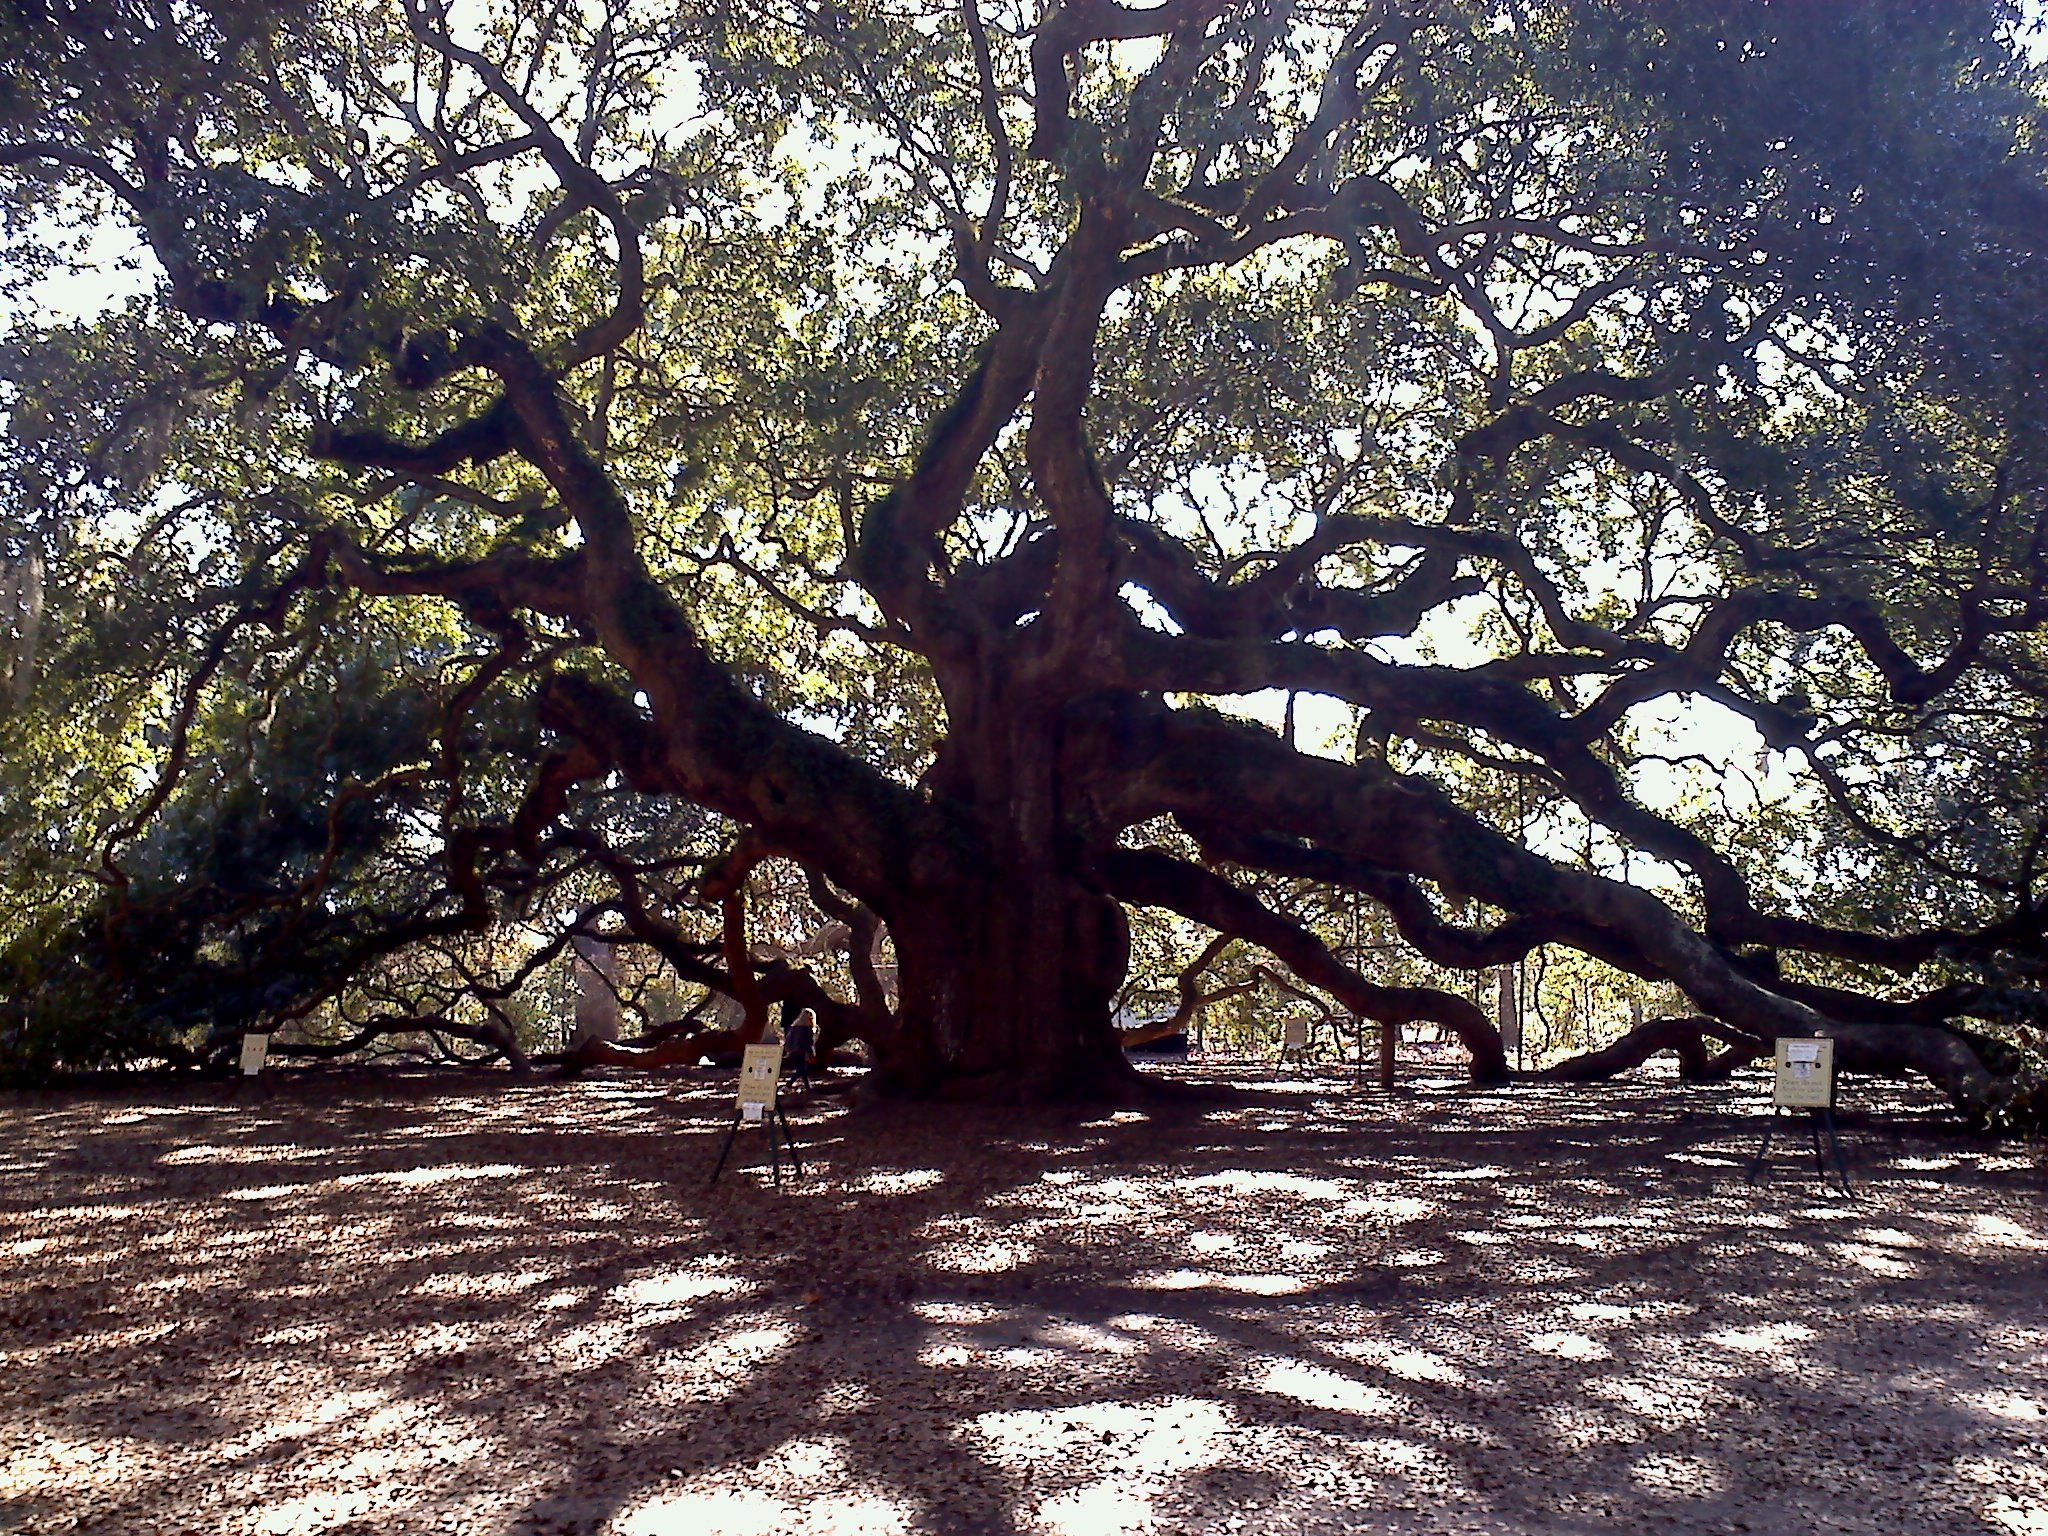 Angel Oak. 1,500 year old tree on Johns Island in Charleston, SC. A beautiful piece of history!